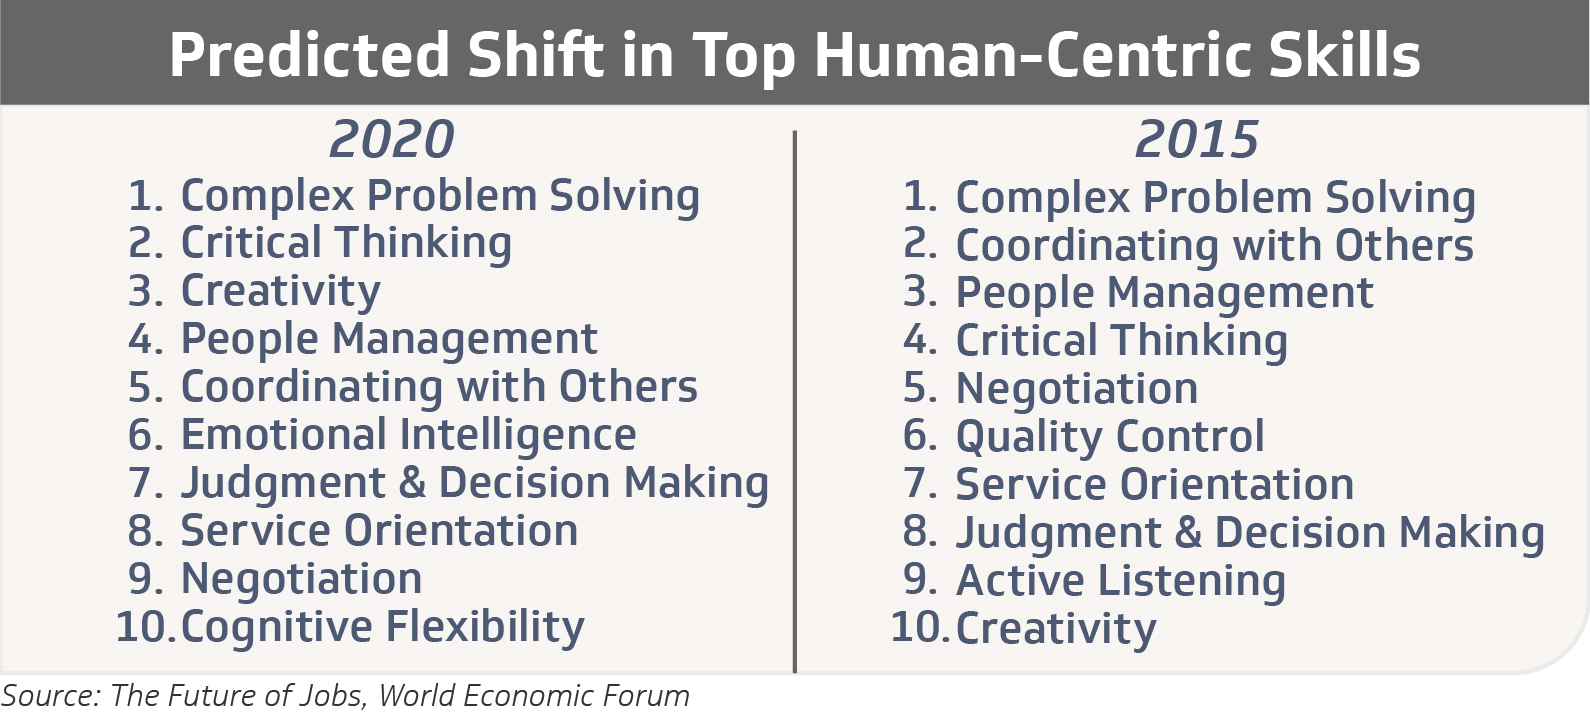 In demand human-centric skills